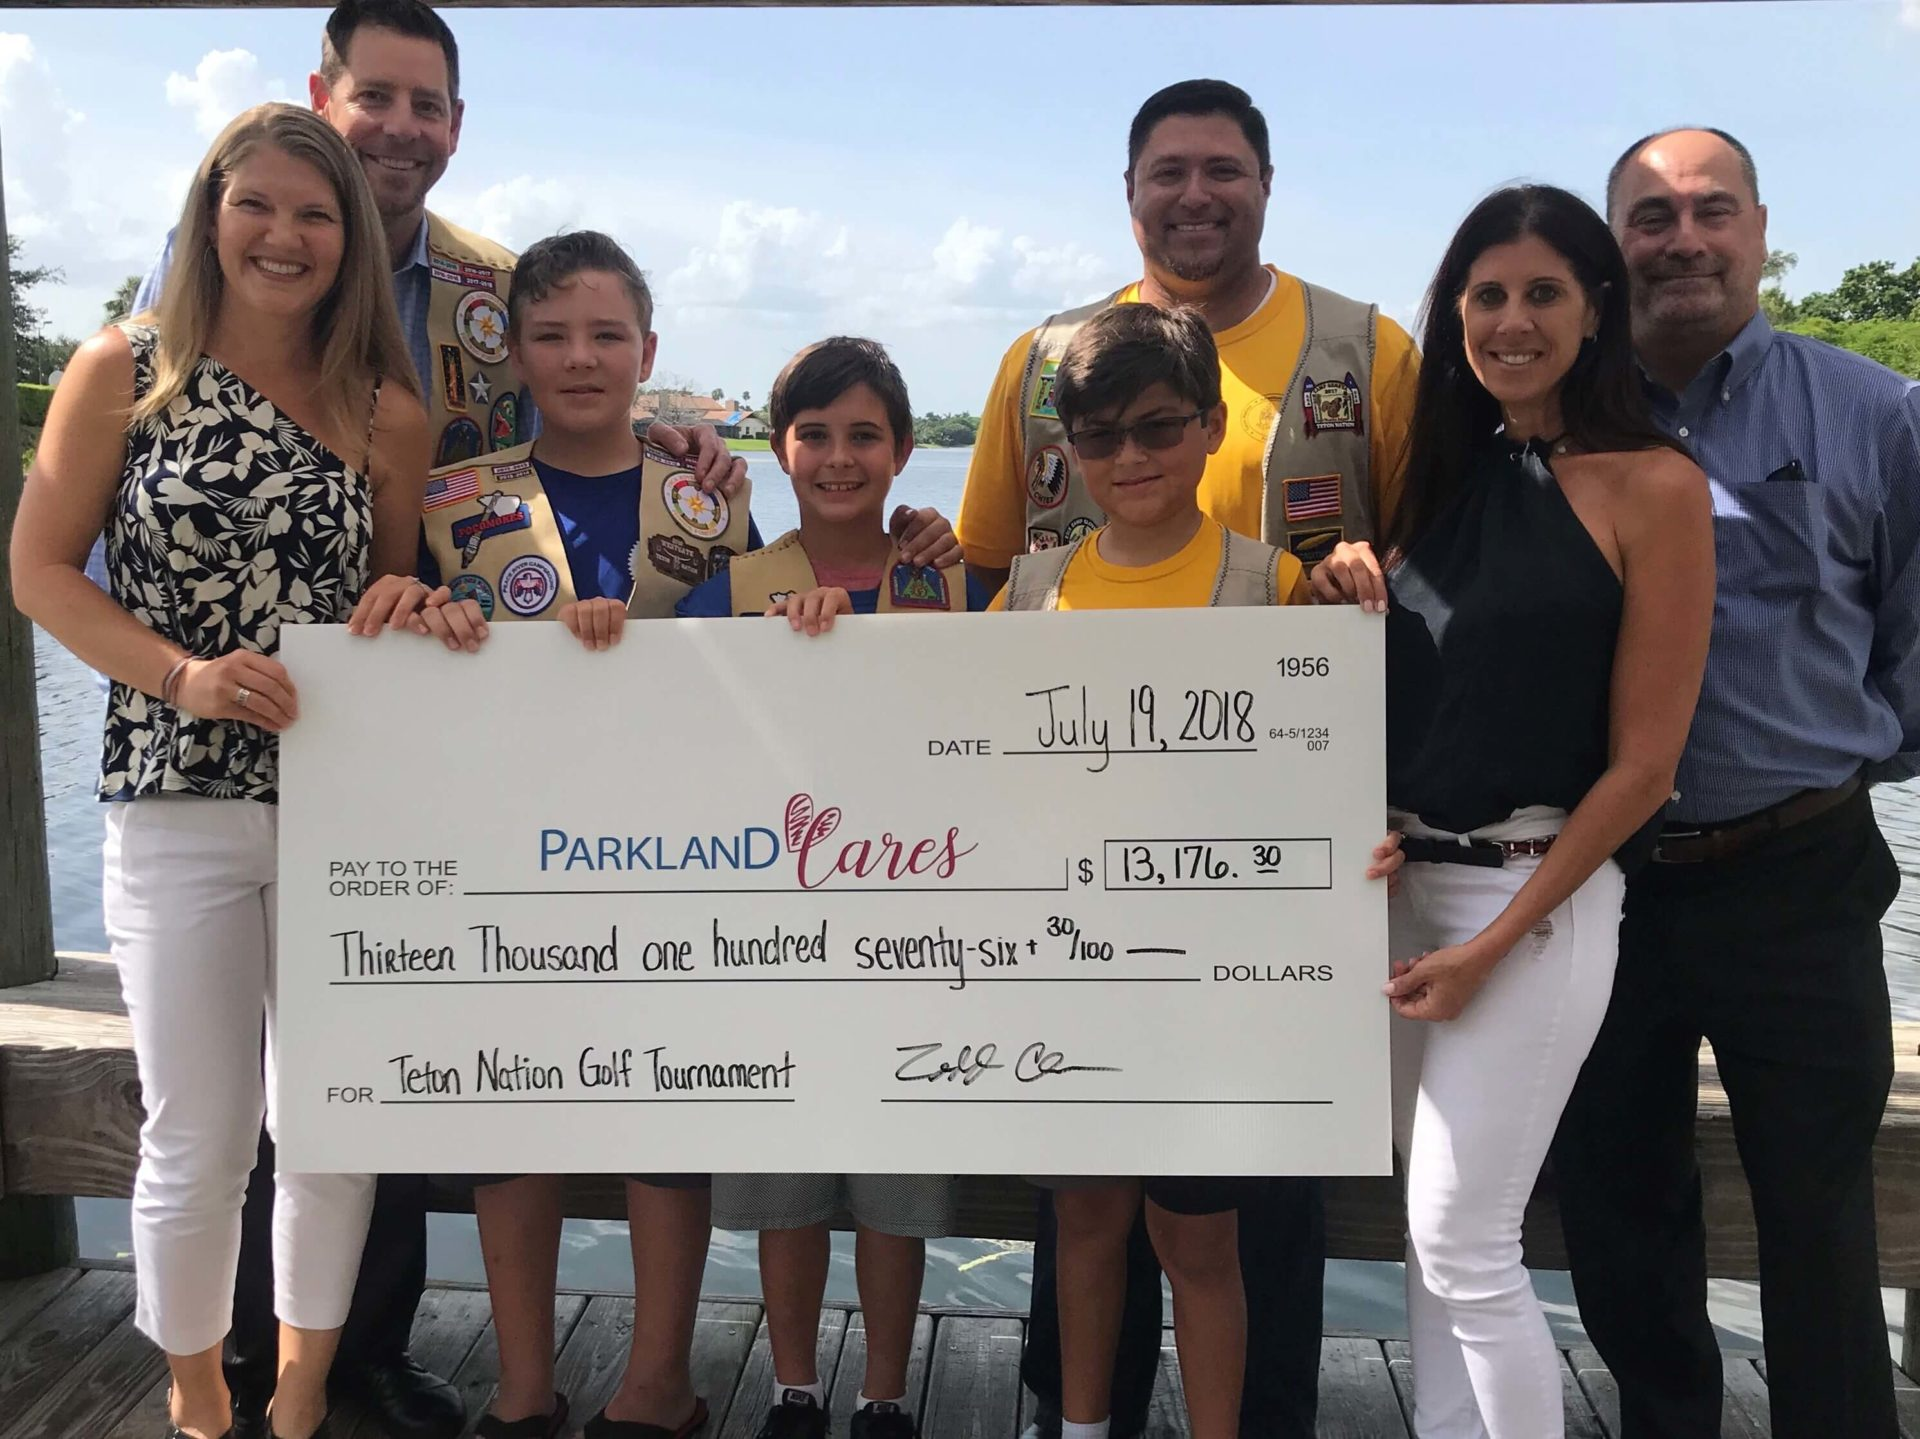 Parkland Cares Donation from Teton National Golf Tournament